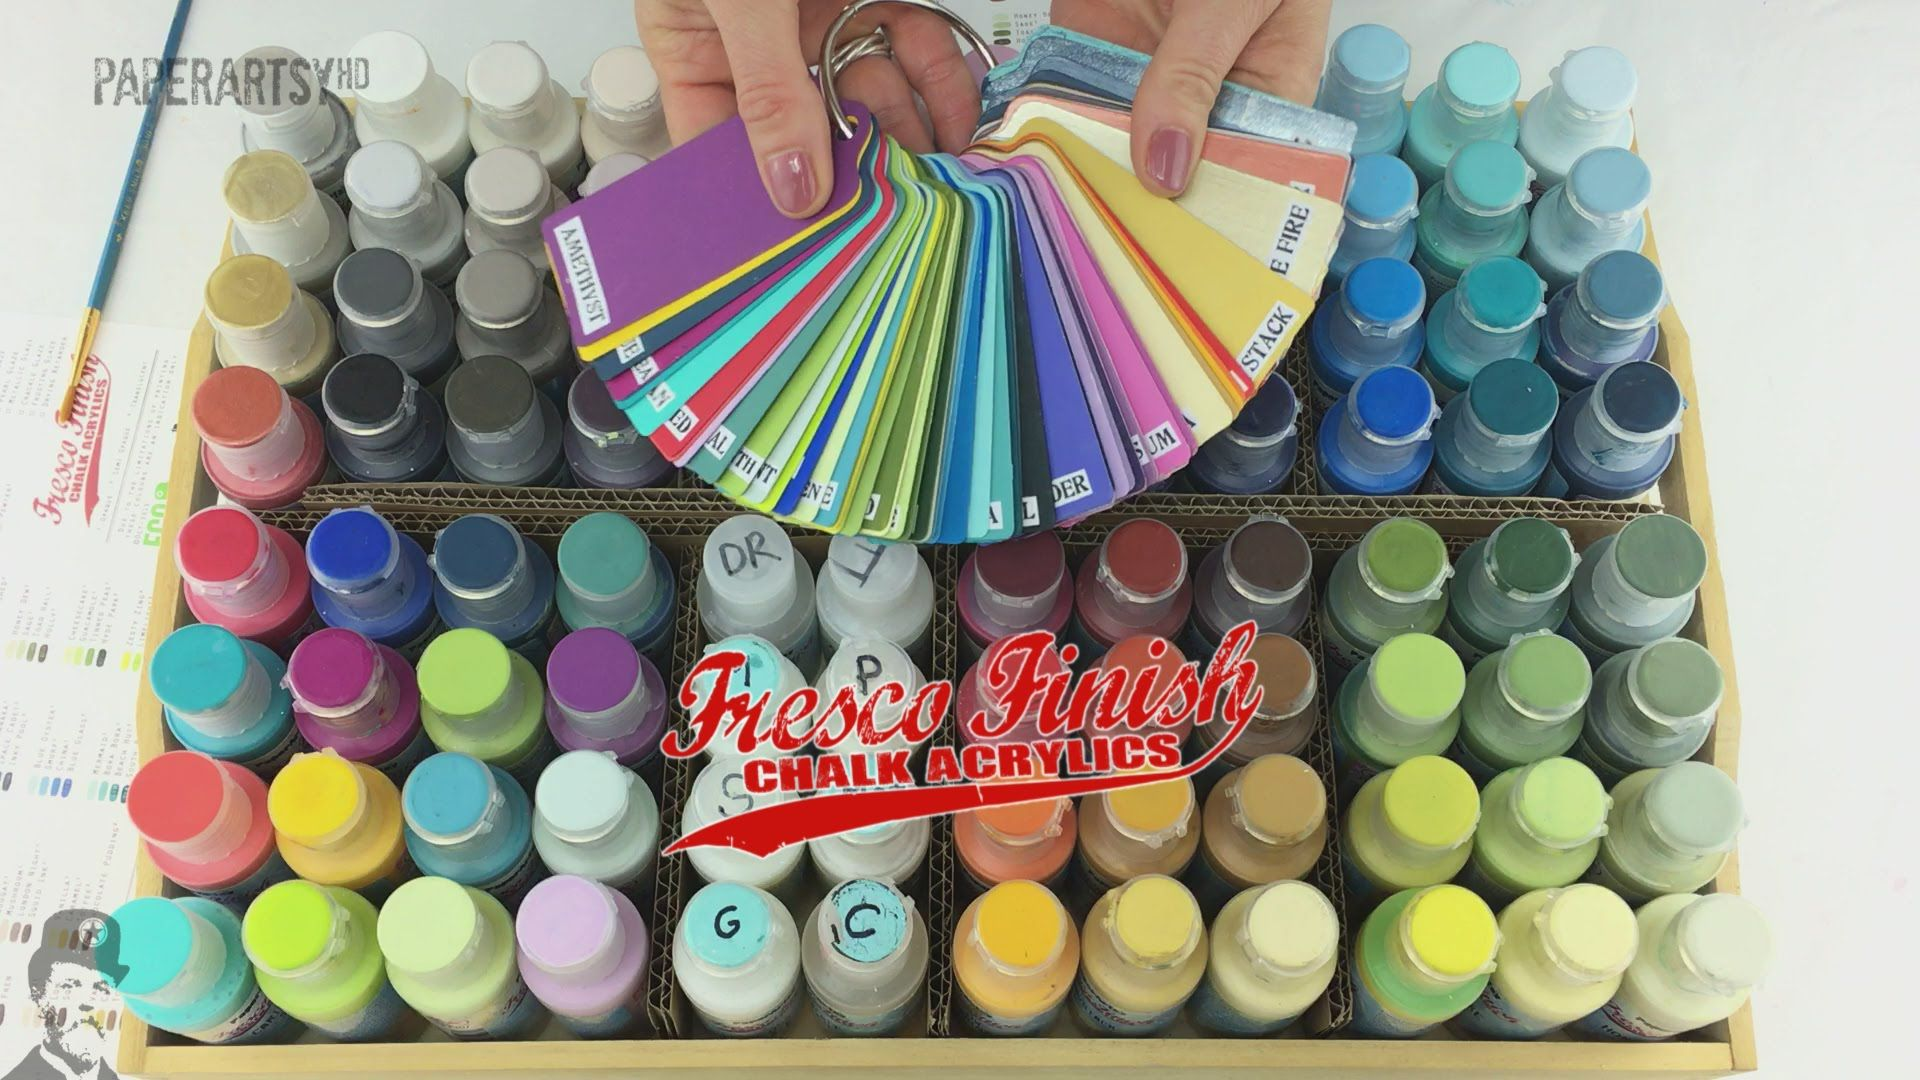 New Feb 2016 Fresco Chalk Paints By Paperartsy Paper Artsy Art Craft Paint Painting Crafts